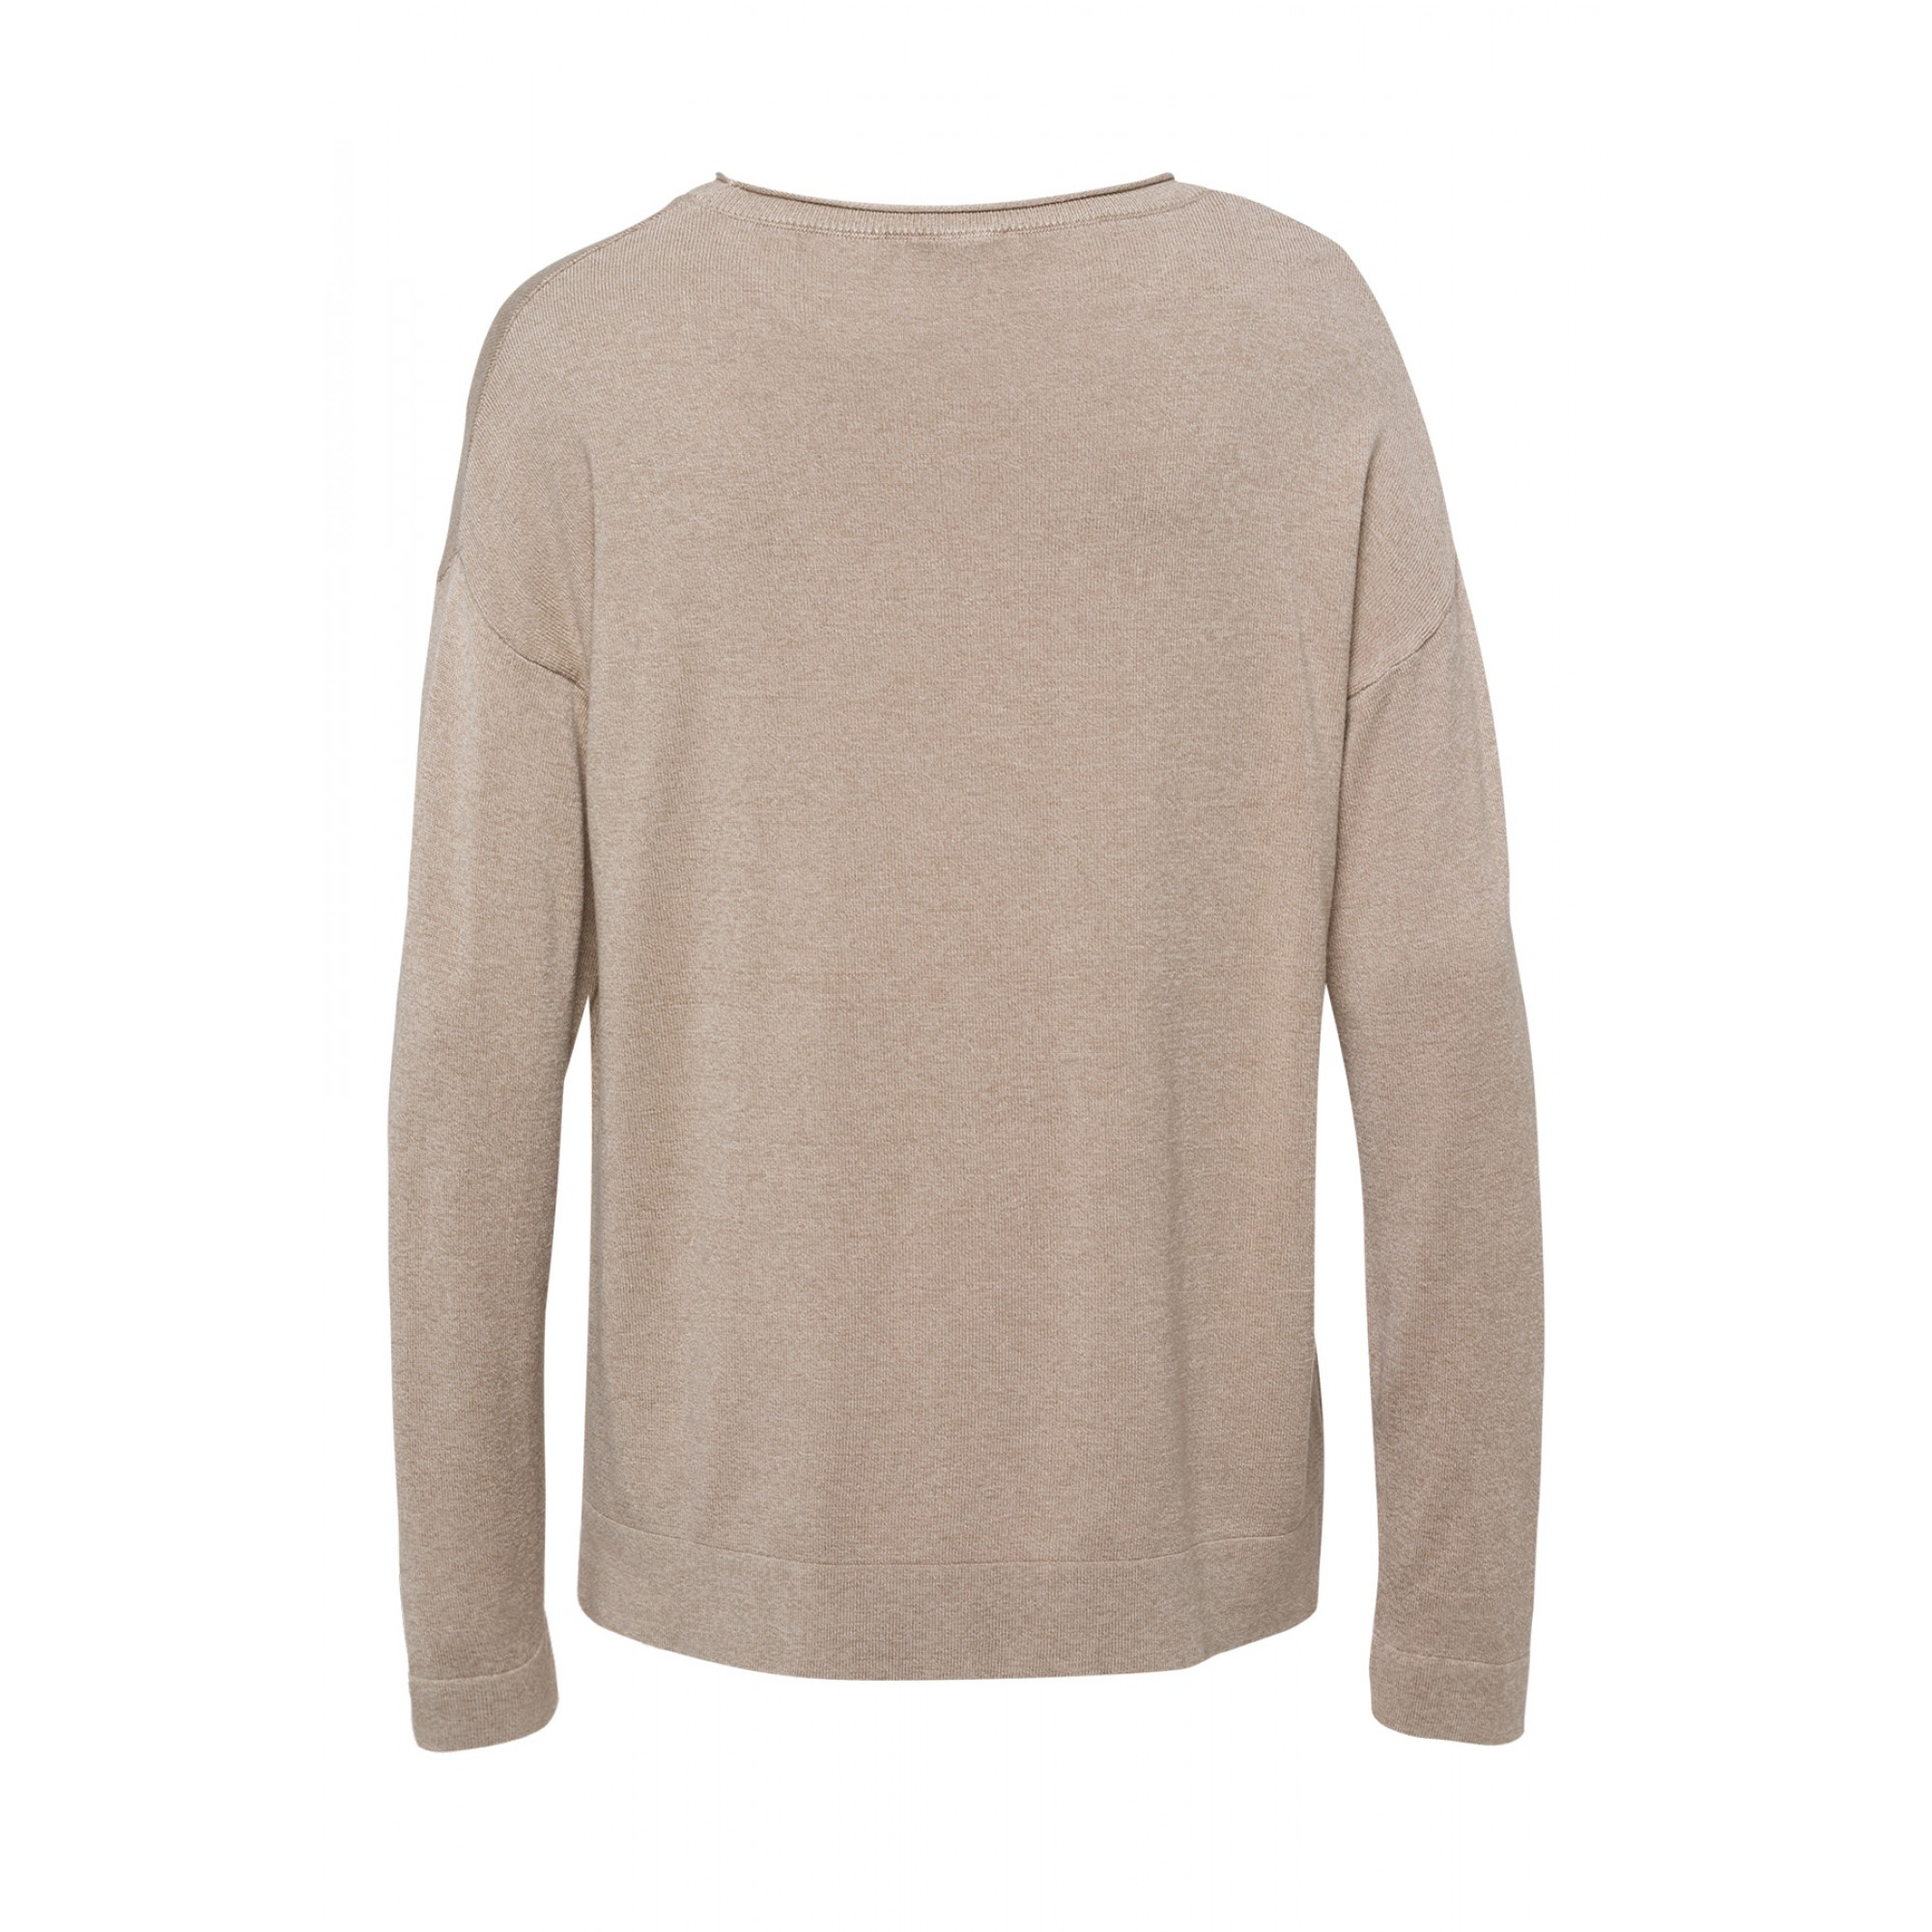 Pullover, Oversize, sand 01911527-0245 2